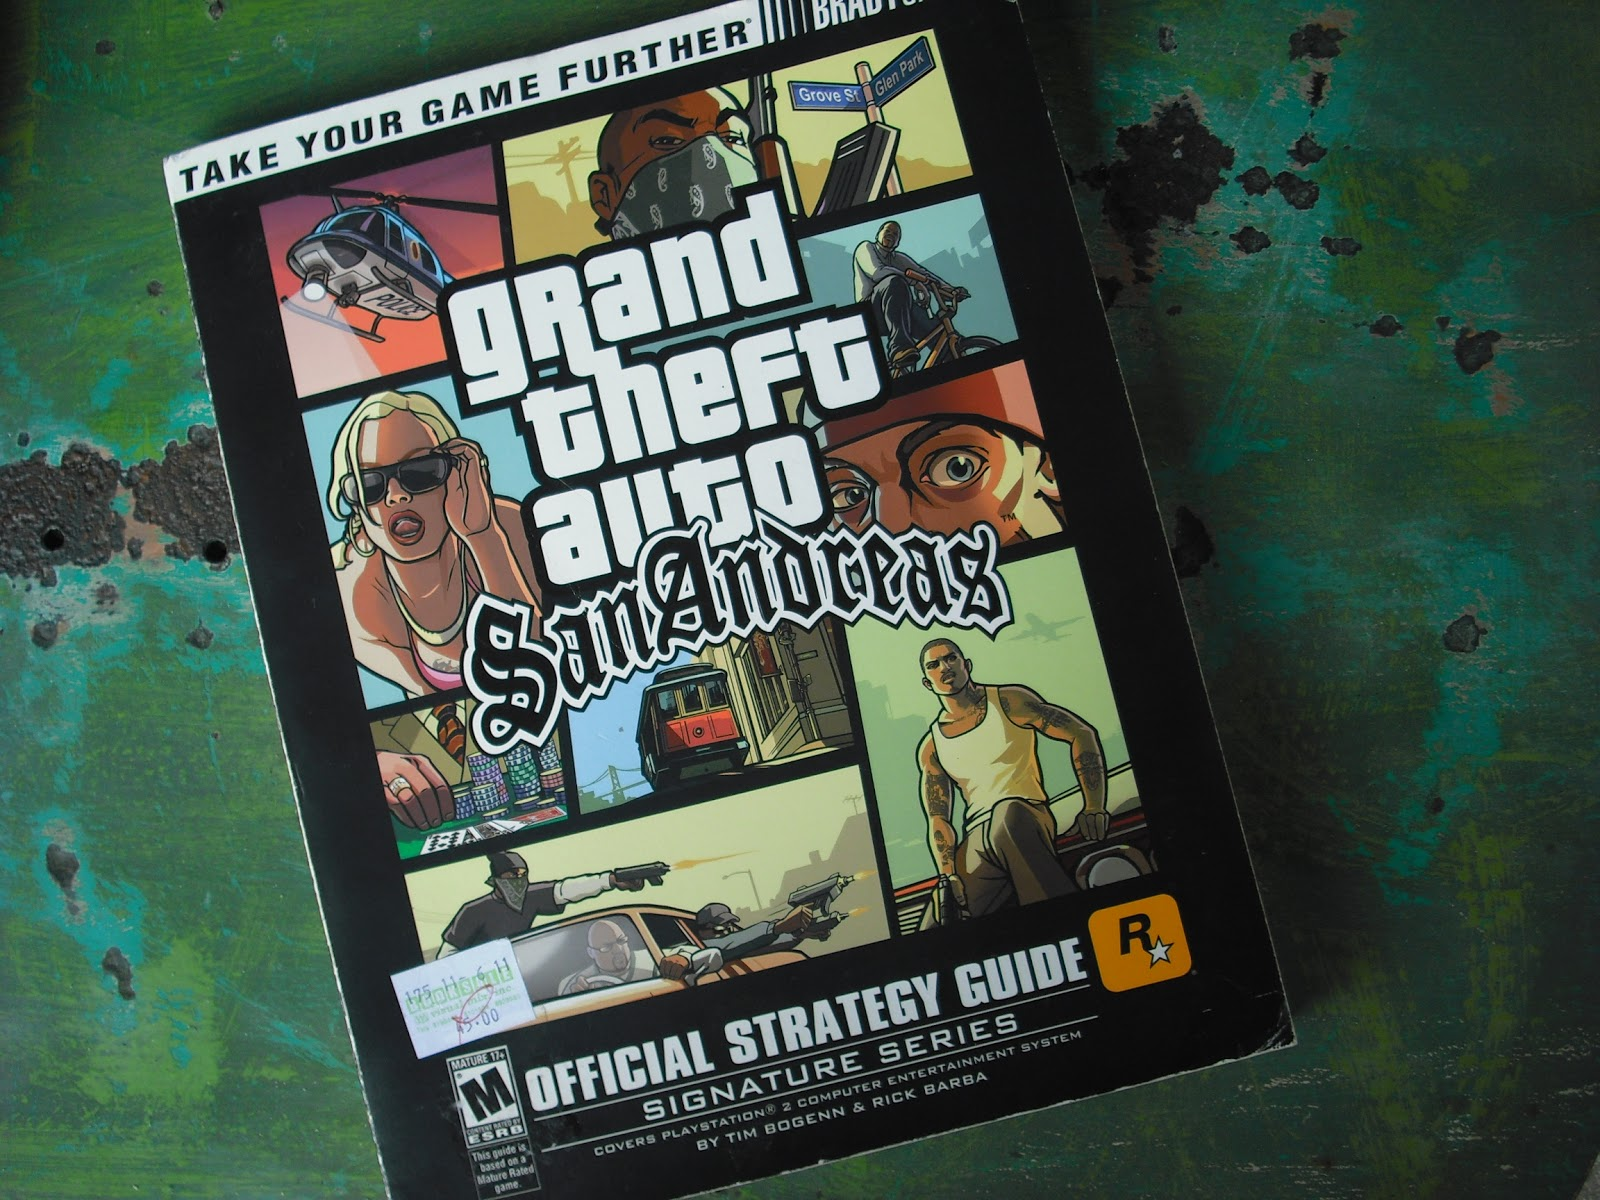 san andreas strategy guide versions guides strategies gtaforums rh gtaforums com grand theft auto v official strategy guide pdf grand theft auto strategy guide